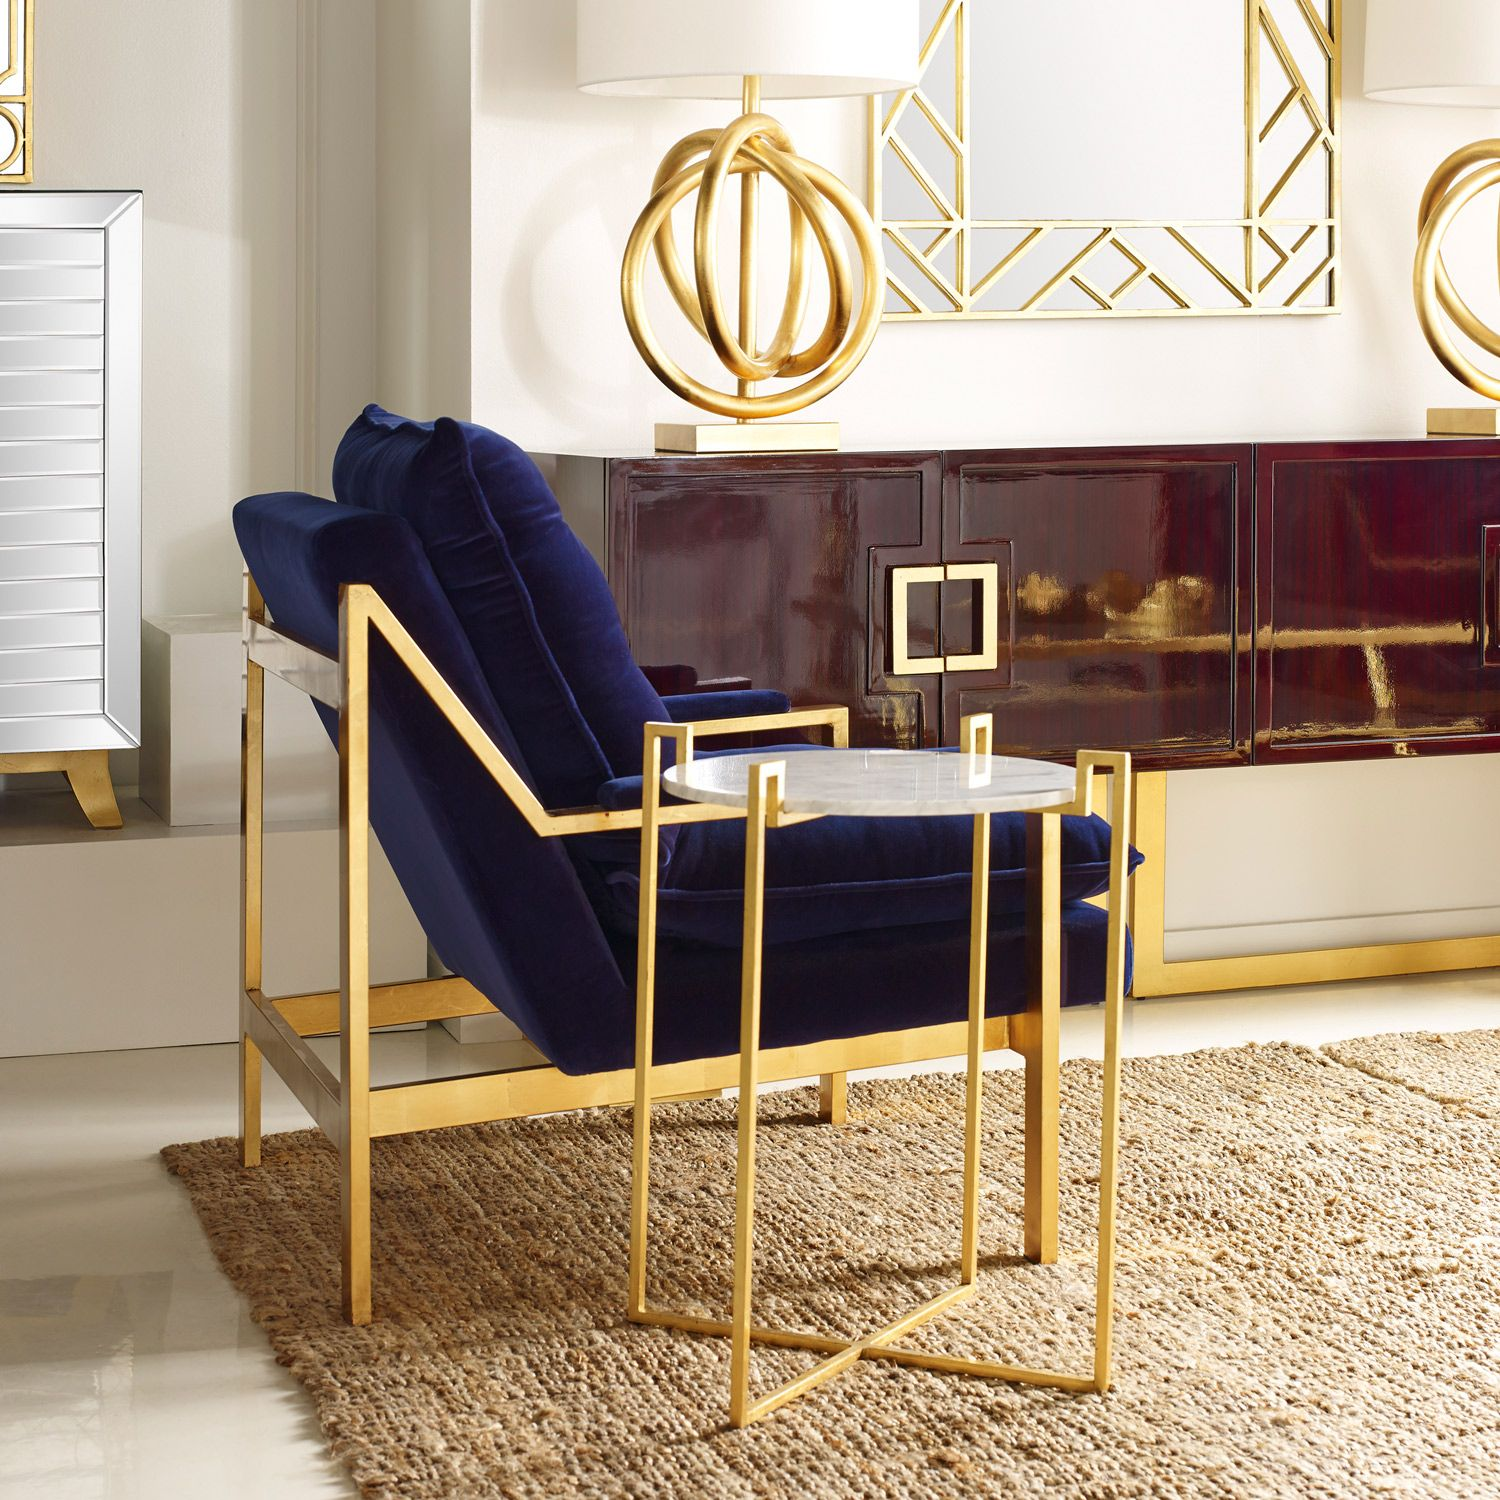 Swell Lounge Armchair With Gold Leaf Details Upholstered In Navy Pabps2019 Chair Design Images Pabps2019Com